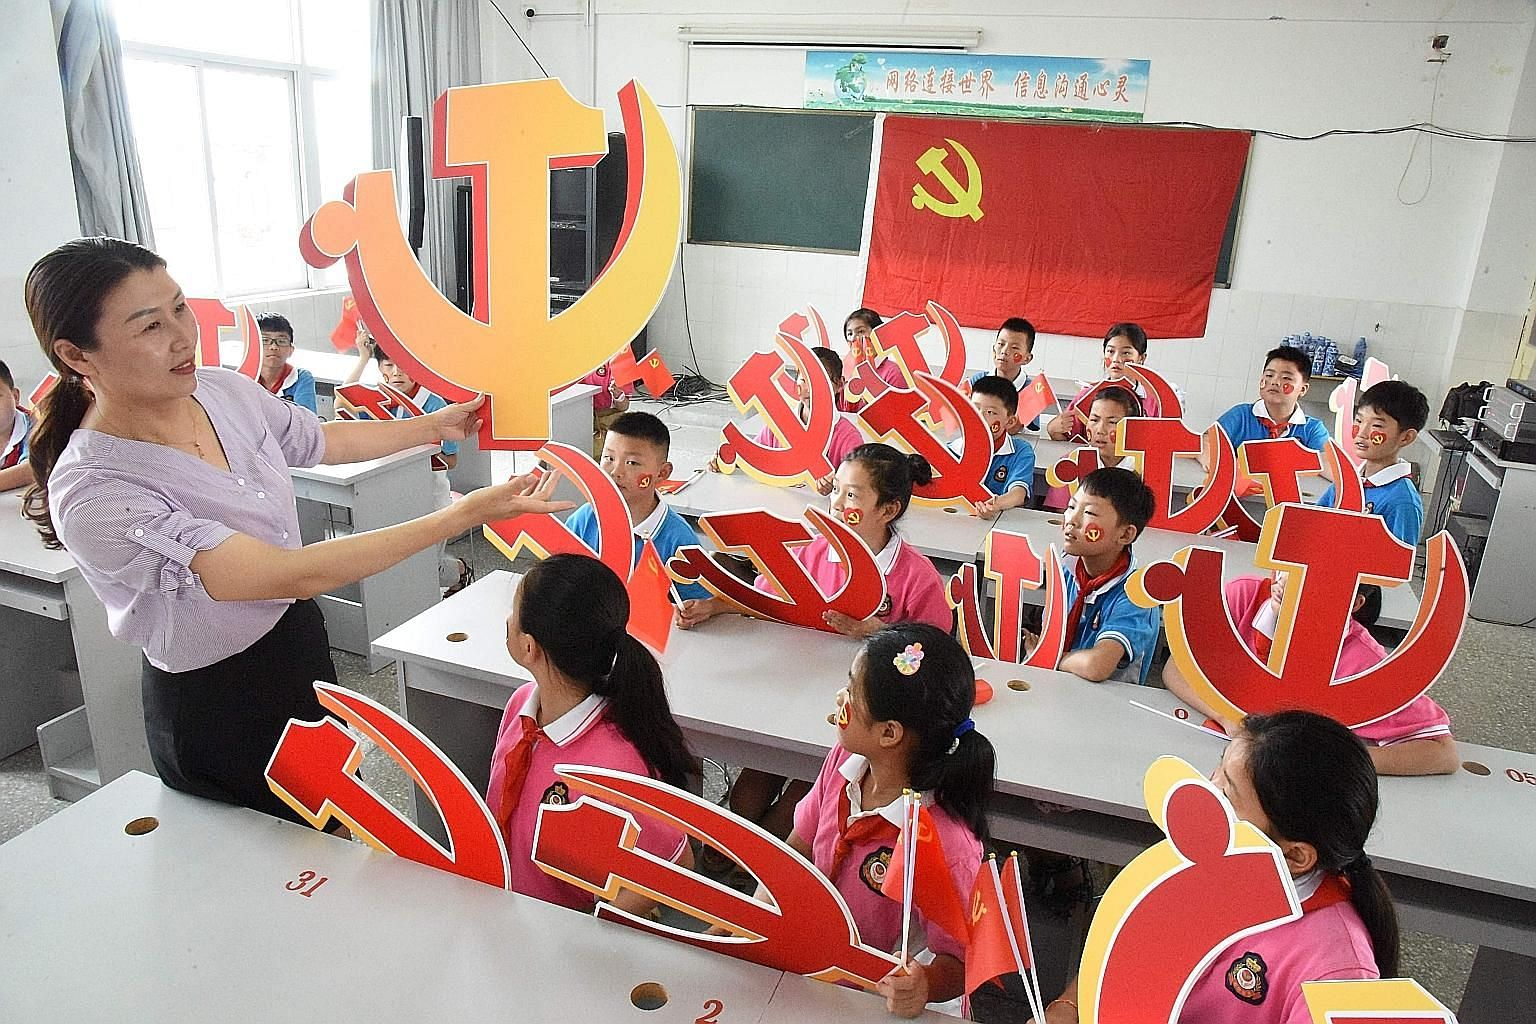 A teacher and her pupils with Chinese Communist Party emblems at a school in eastern Jiangsu province. The writer says the West is labouring under three flawed assumptions, one of which is that China cannot possibly be a good partner as long as it is